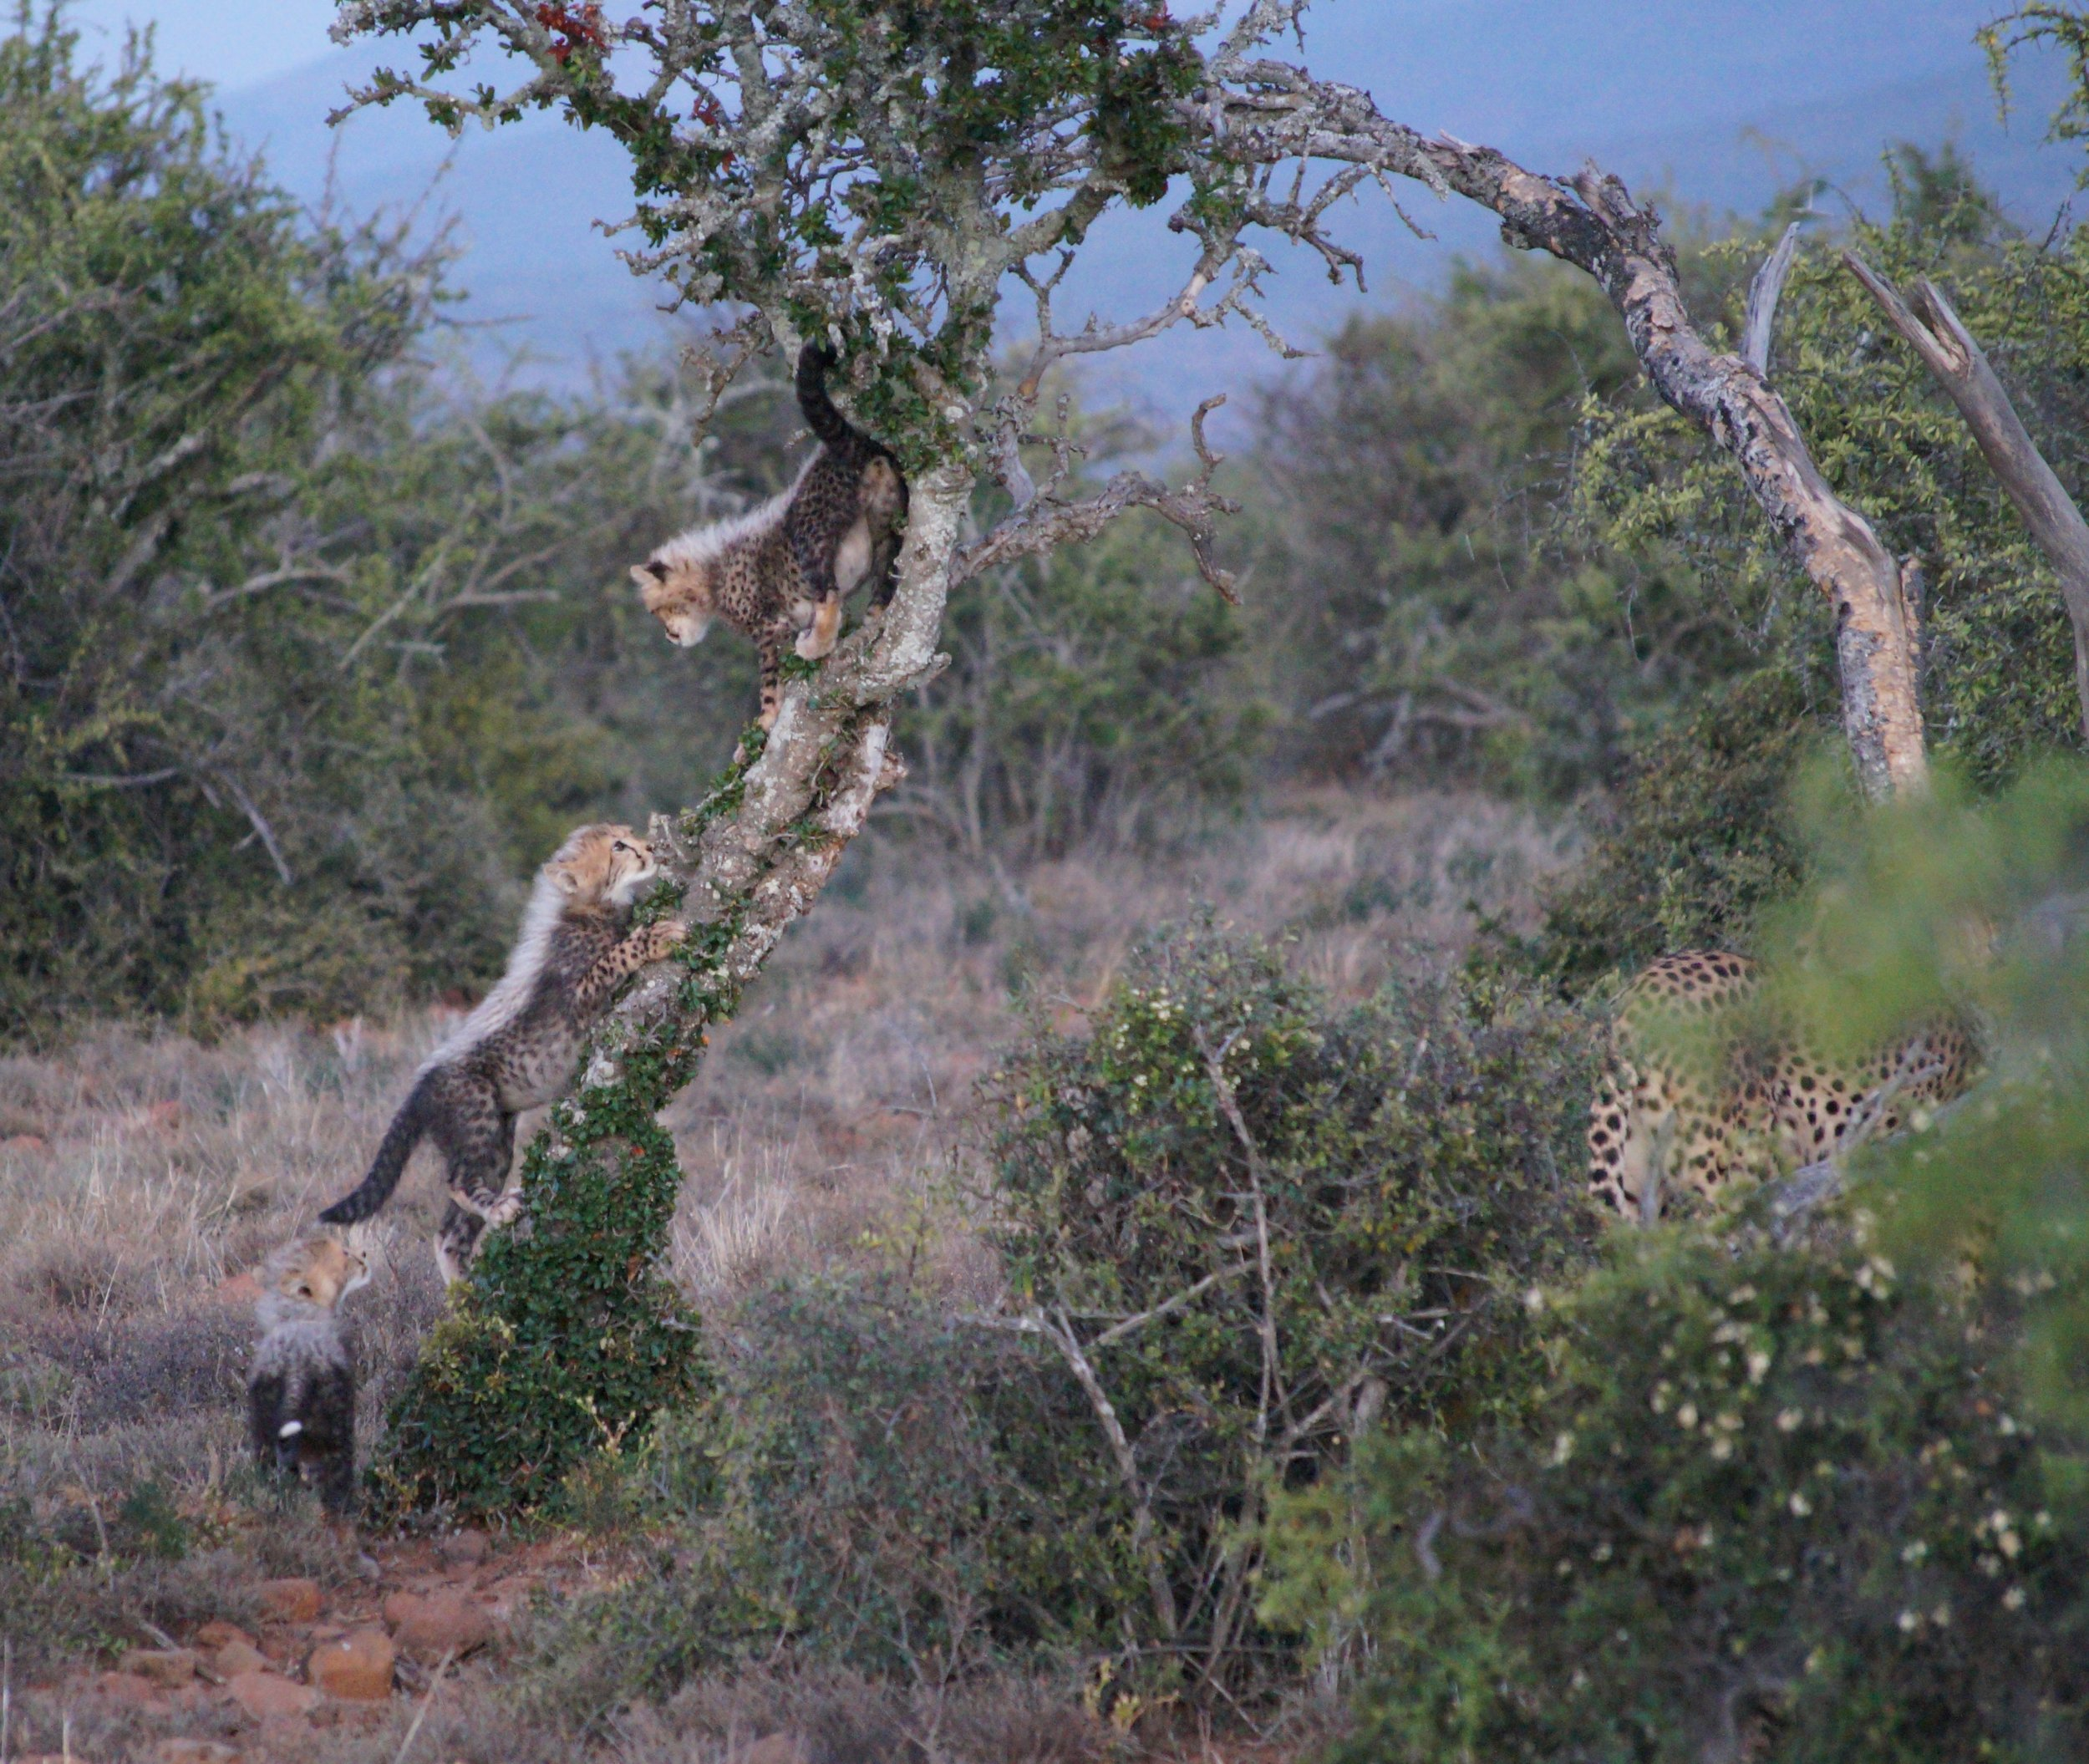 Female cheetah with her cubs at Samara Private Game Reserve. Photo: Ida Hansen